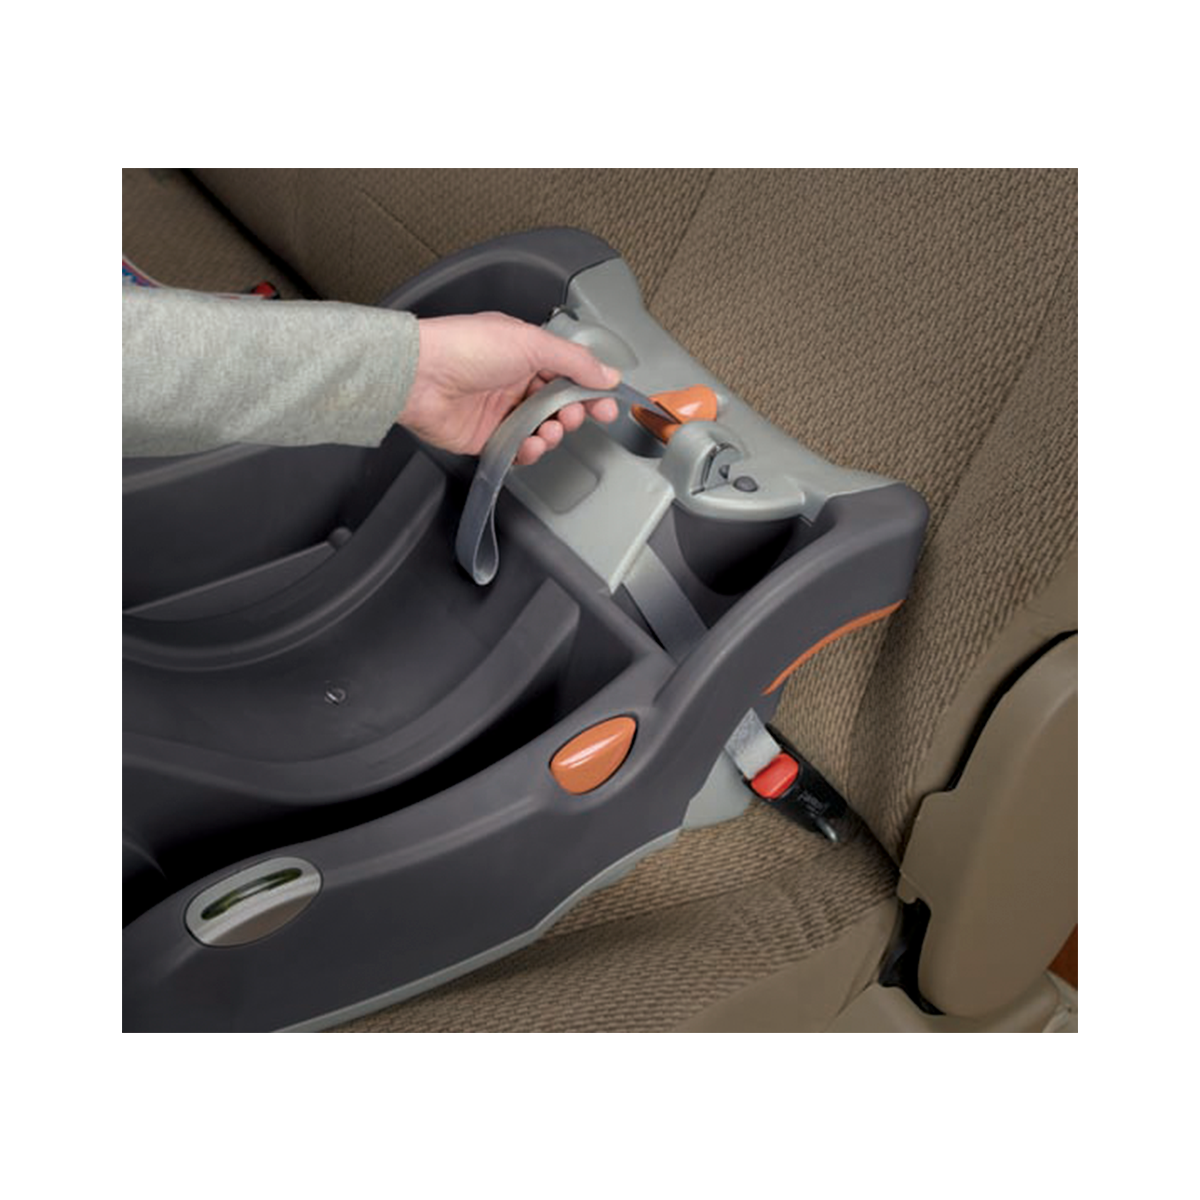 Chicco KeyFit/KeyFit 30 Infant Car Seat